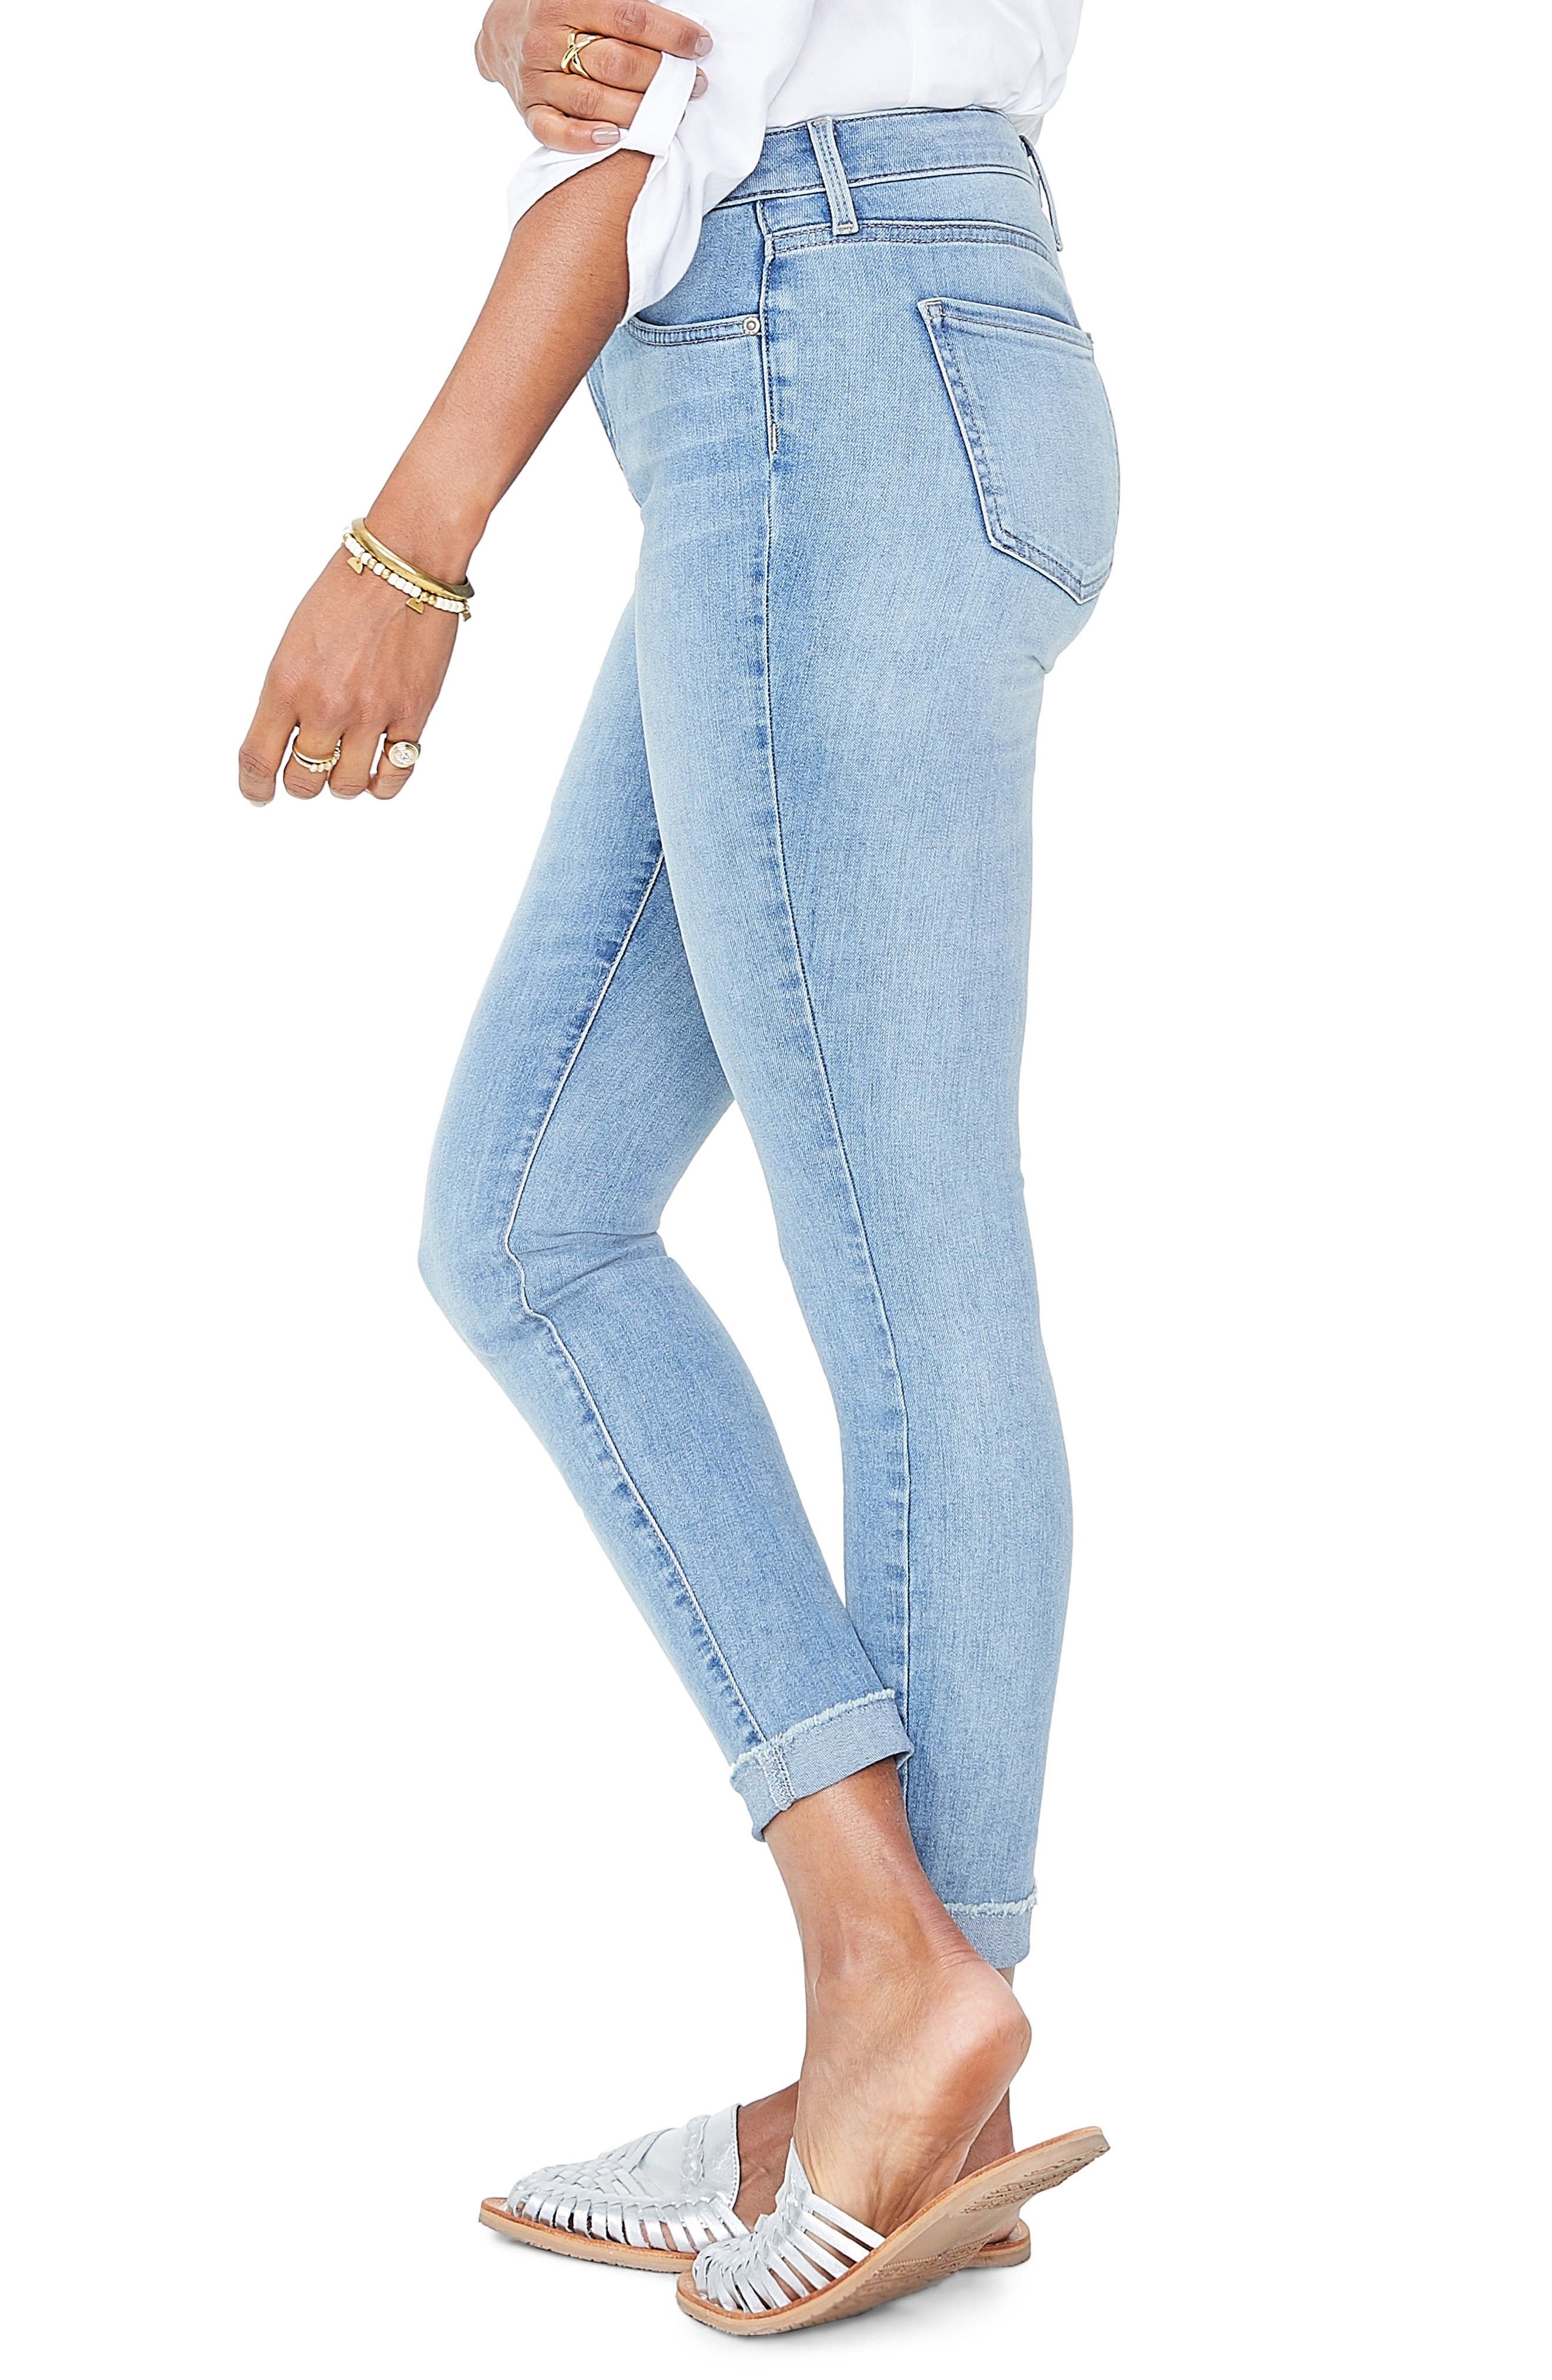 Ami Cuffed Ankle Skinny Jeans,                             Alternate thumbnail 3, color,                             DREAMSTATE